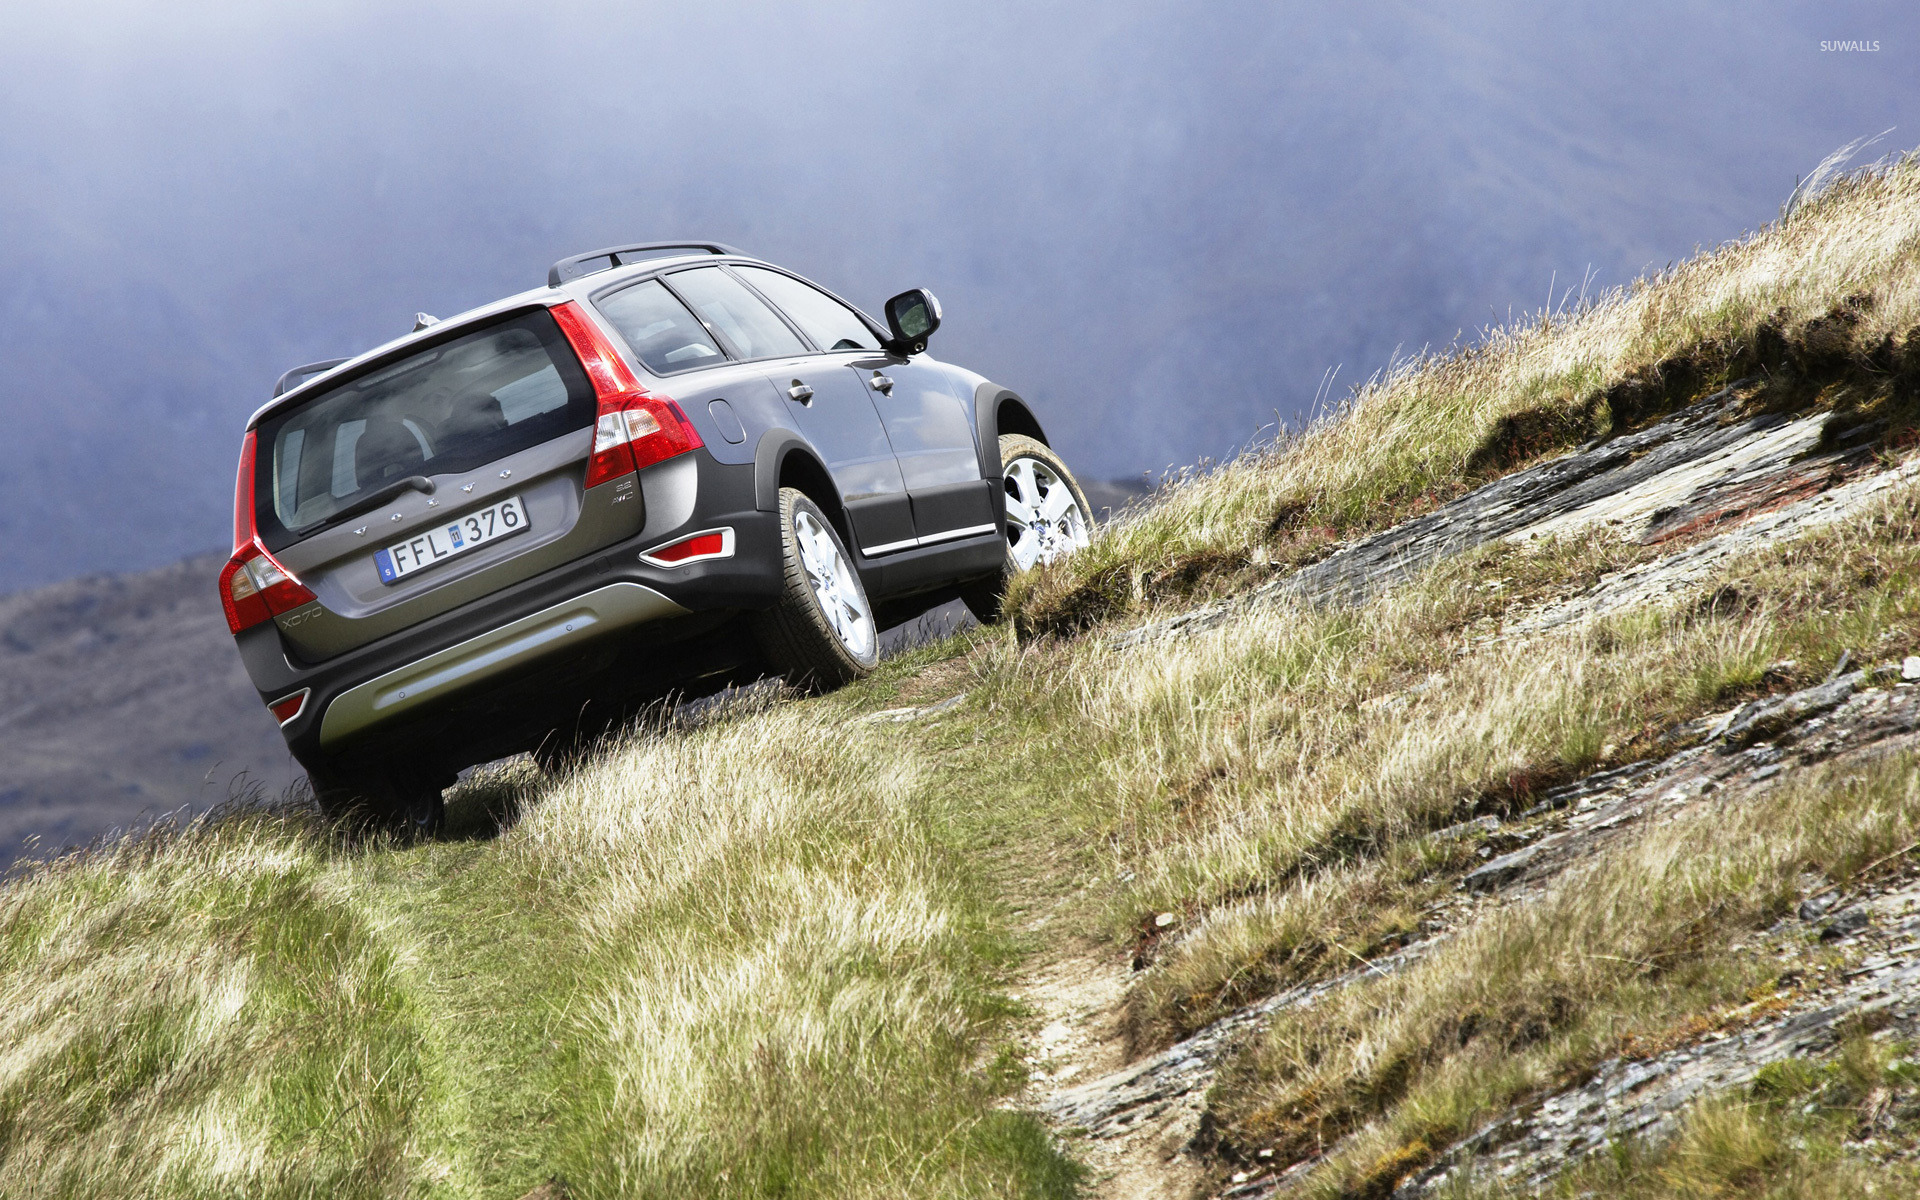 Volvo XC70 on a hill path wallpaper   Car wallpapers   50567 1920x1200